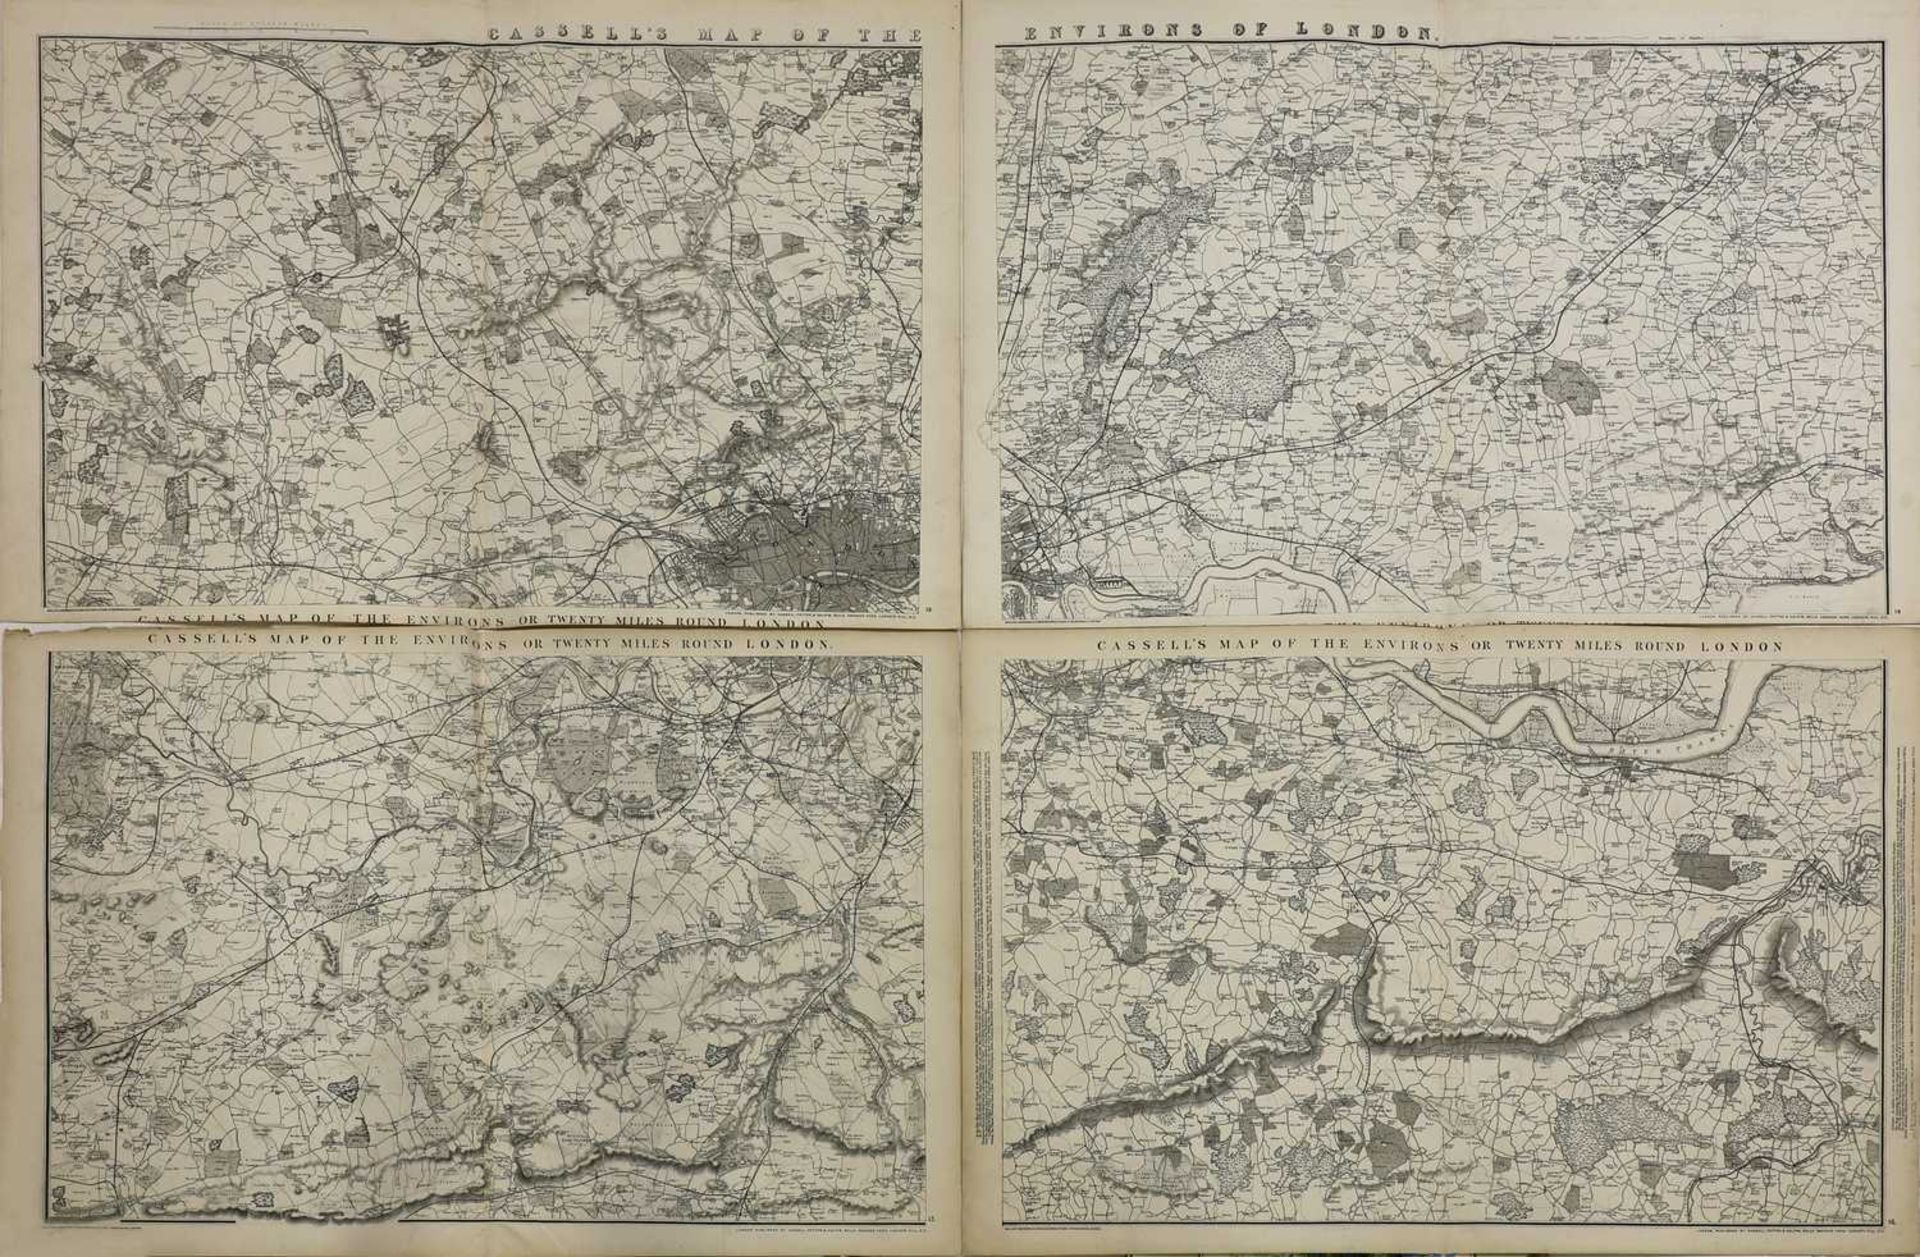 CASSELL'S MAP OF THE ENVIRONS OR TWENTY MILES ROUND LONDON, - Image 2 of 2